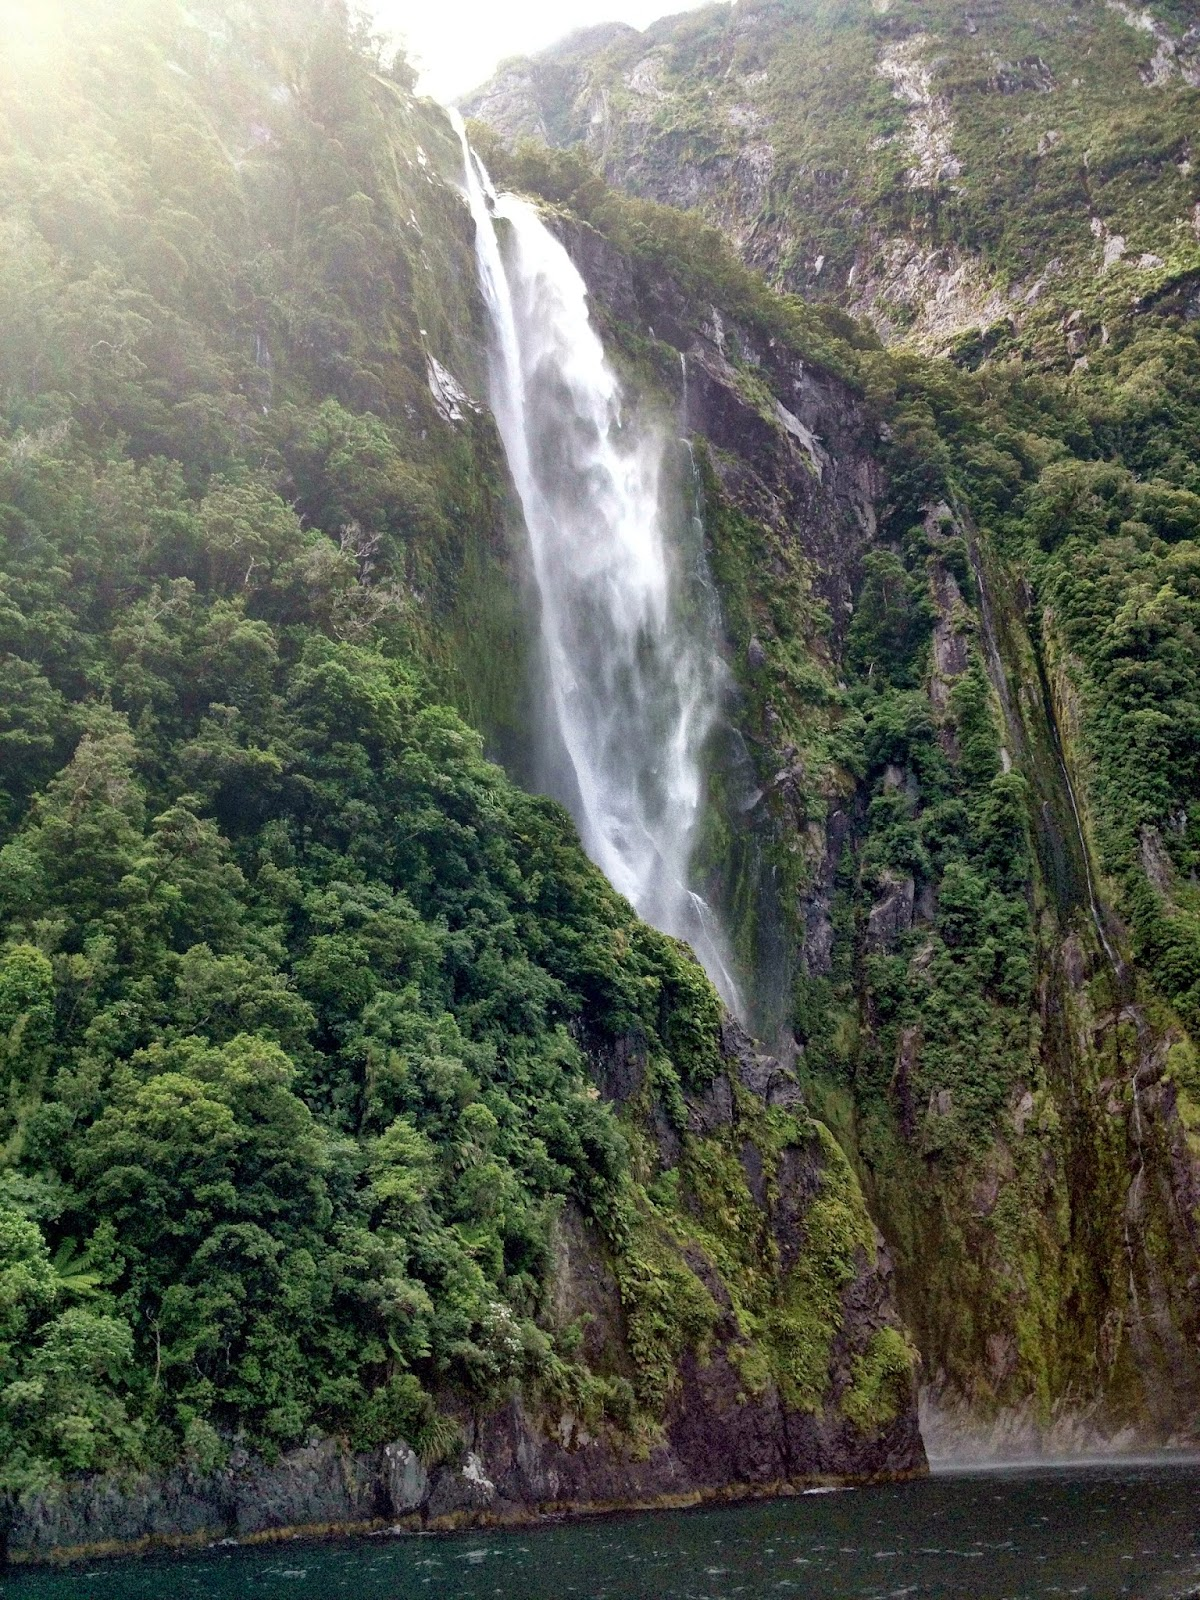 Waterfall in the Milford Sound, Fjordland, New Zealand